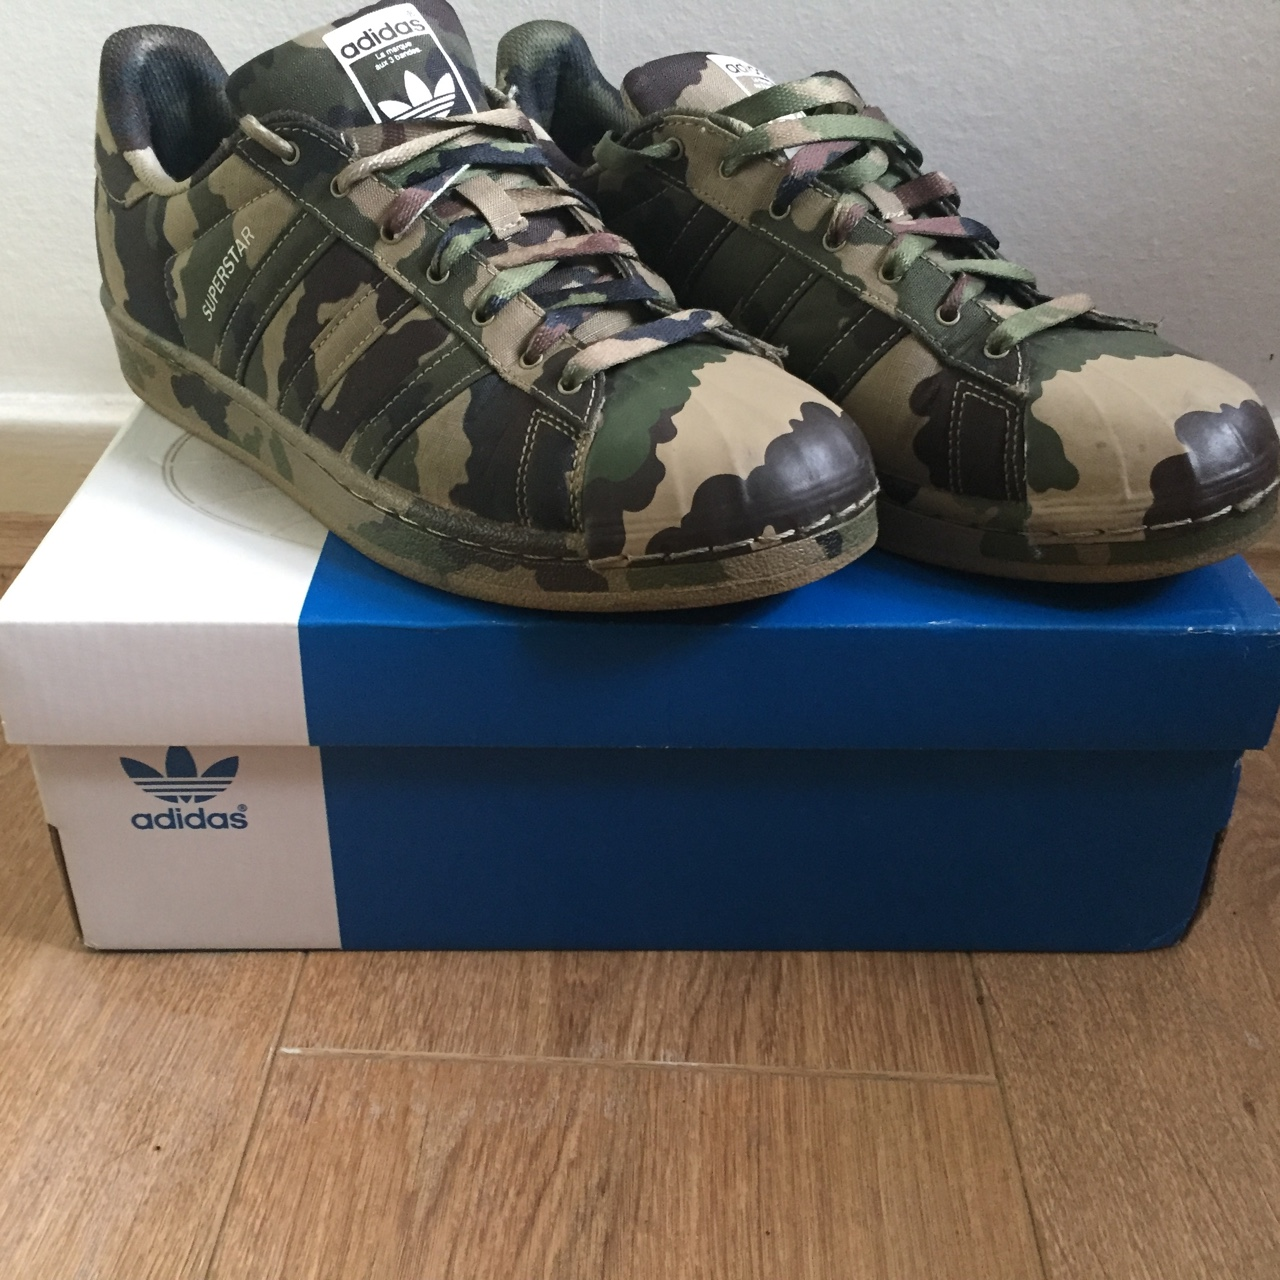 online retailer 7bf21 09794 Adidas superstar camo Size uk 7.5 Used but condition... - Depop